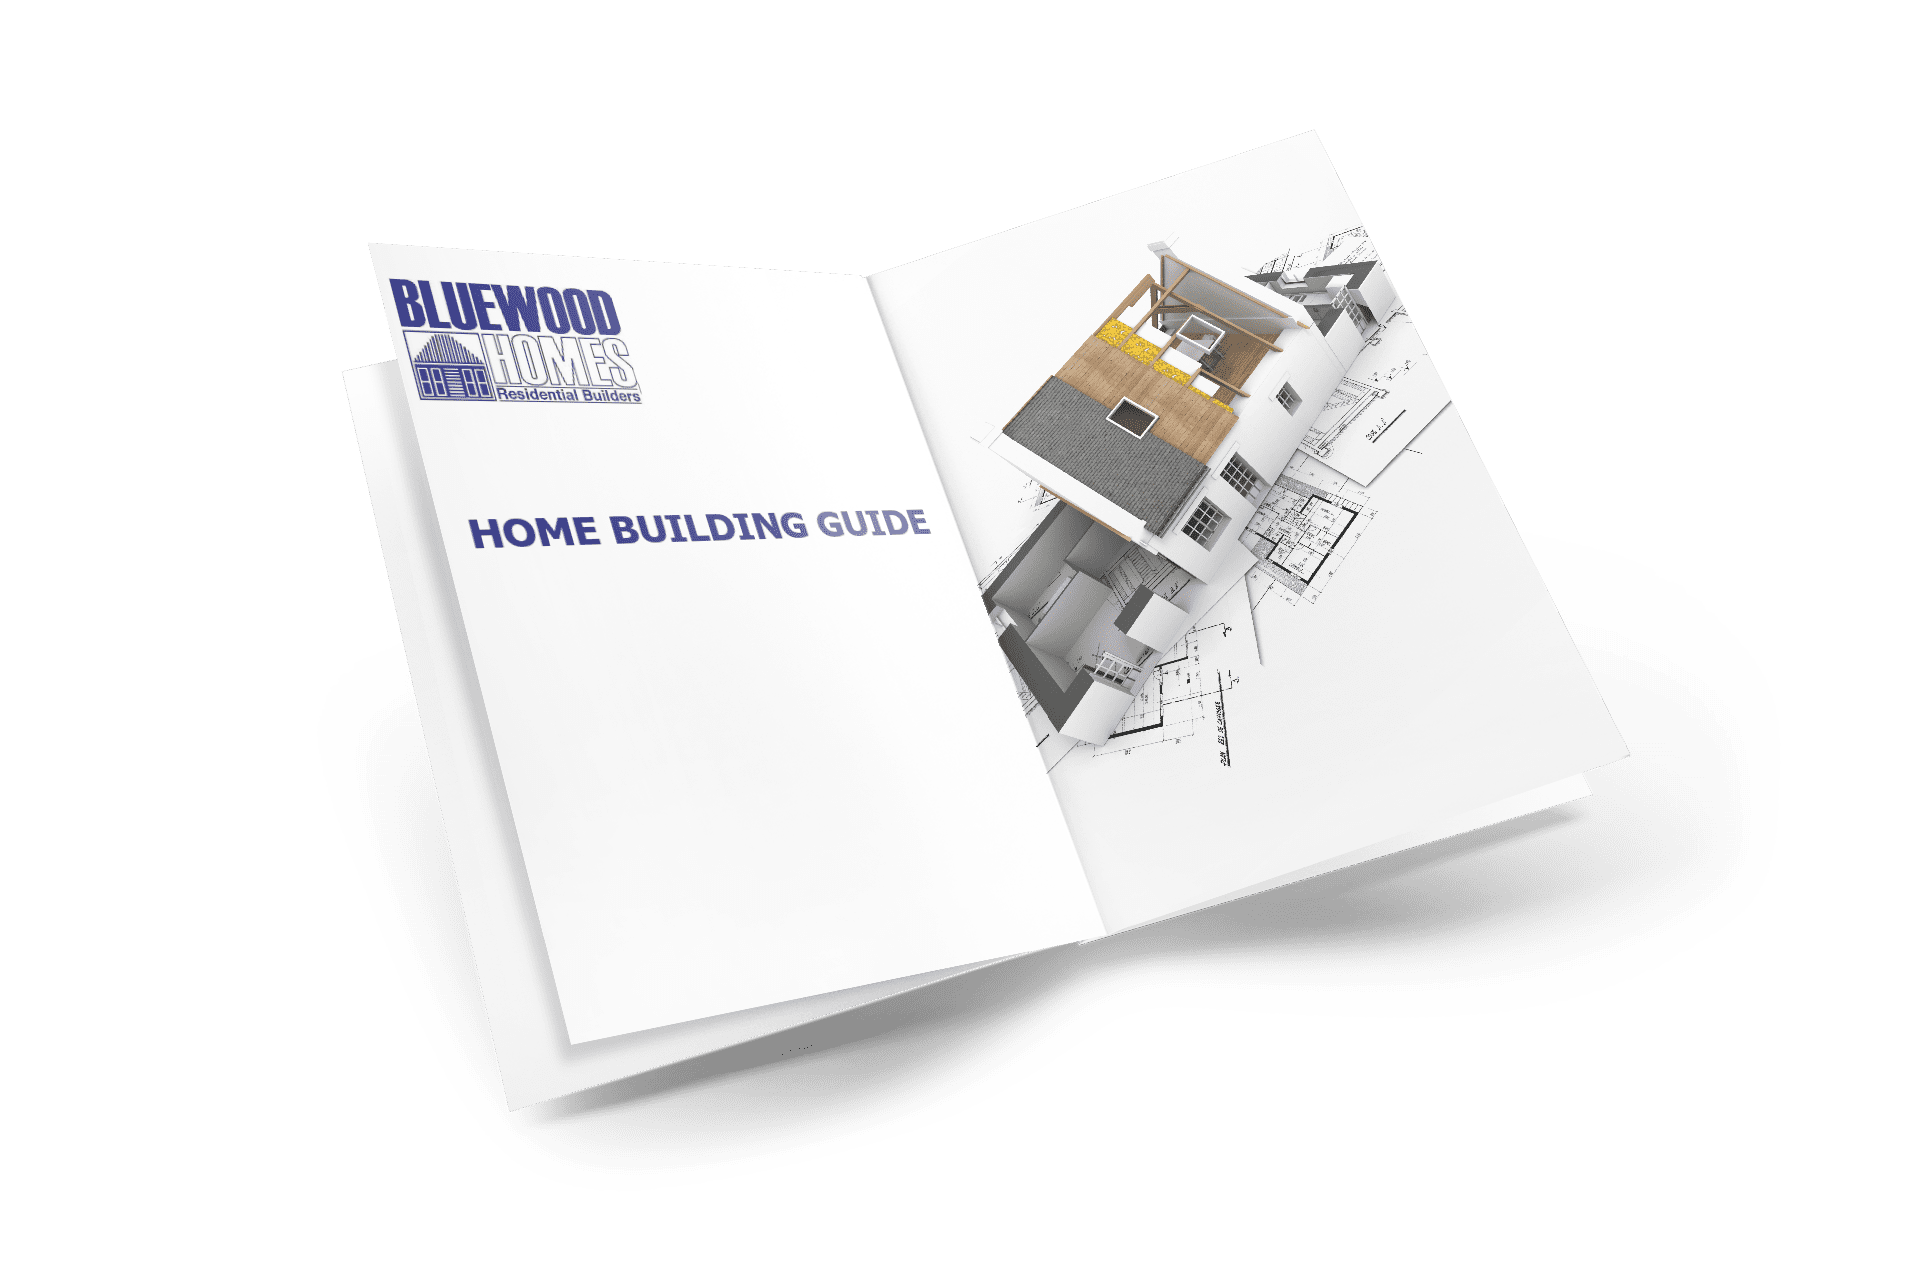 Image of home building guide